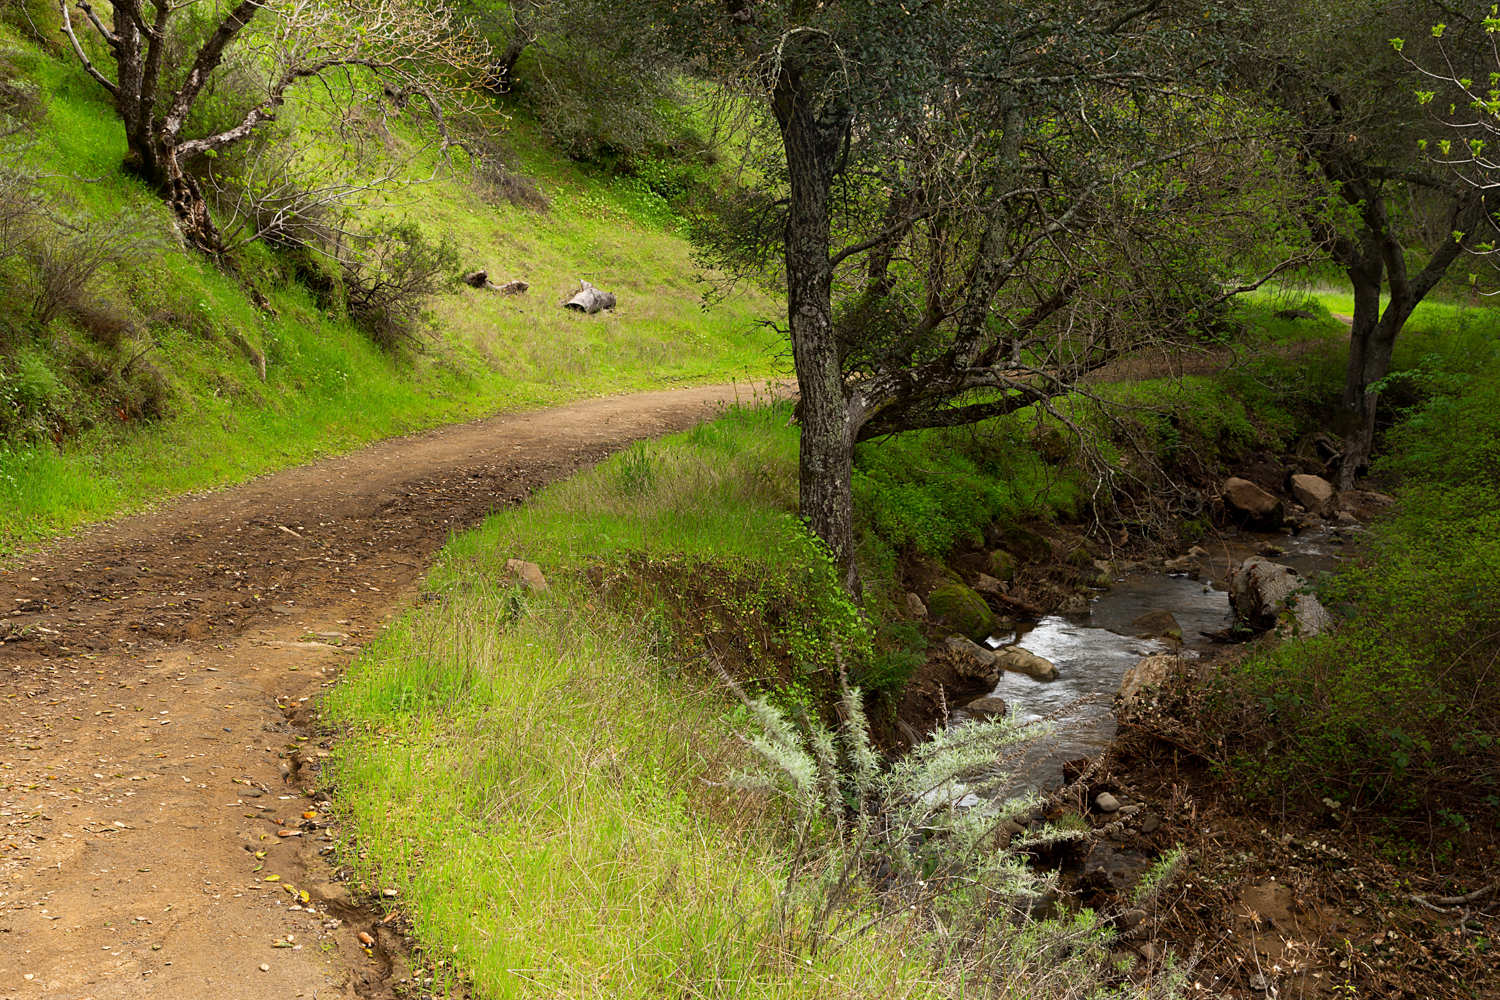 Sycamore Creek road and Sycamore Creek